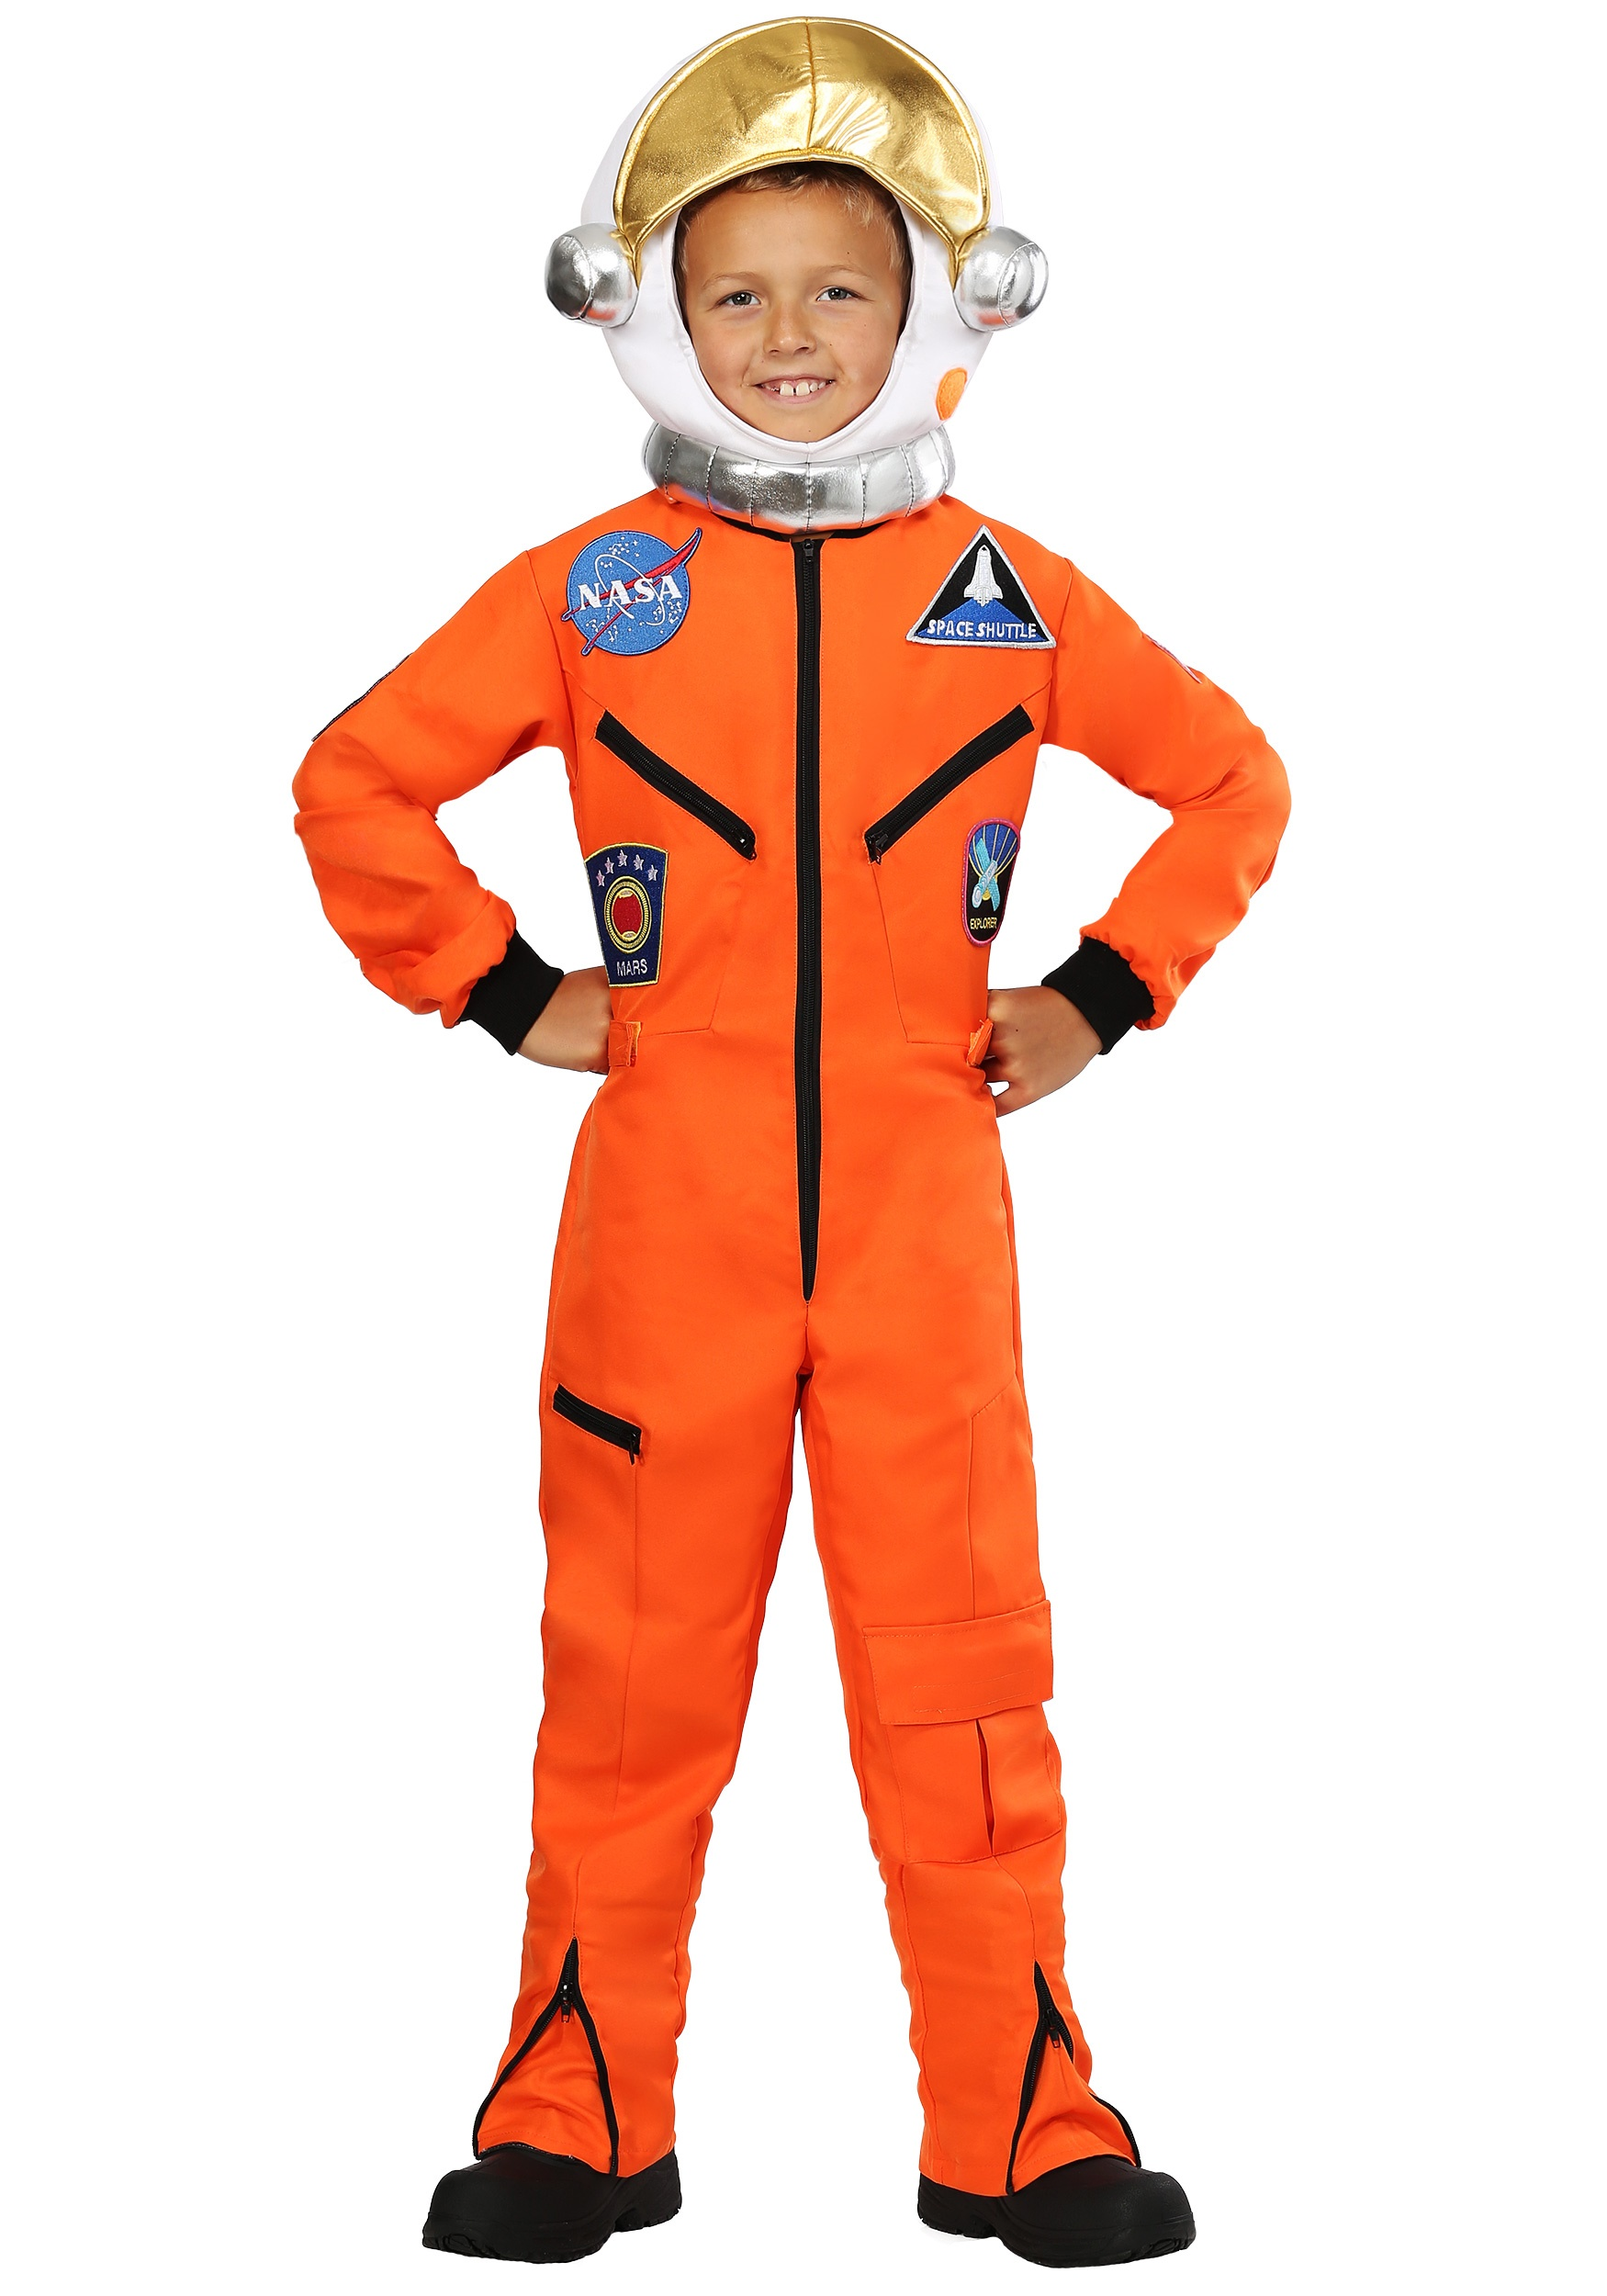 cef8c8855d8b Orange Astronaut Jumpsuit Child Costume